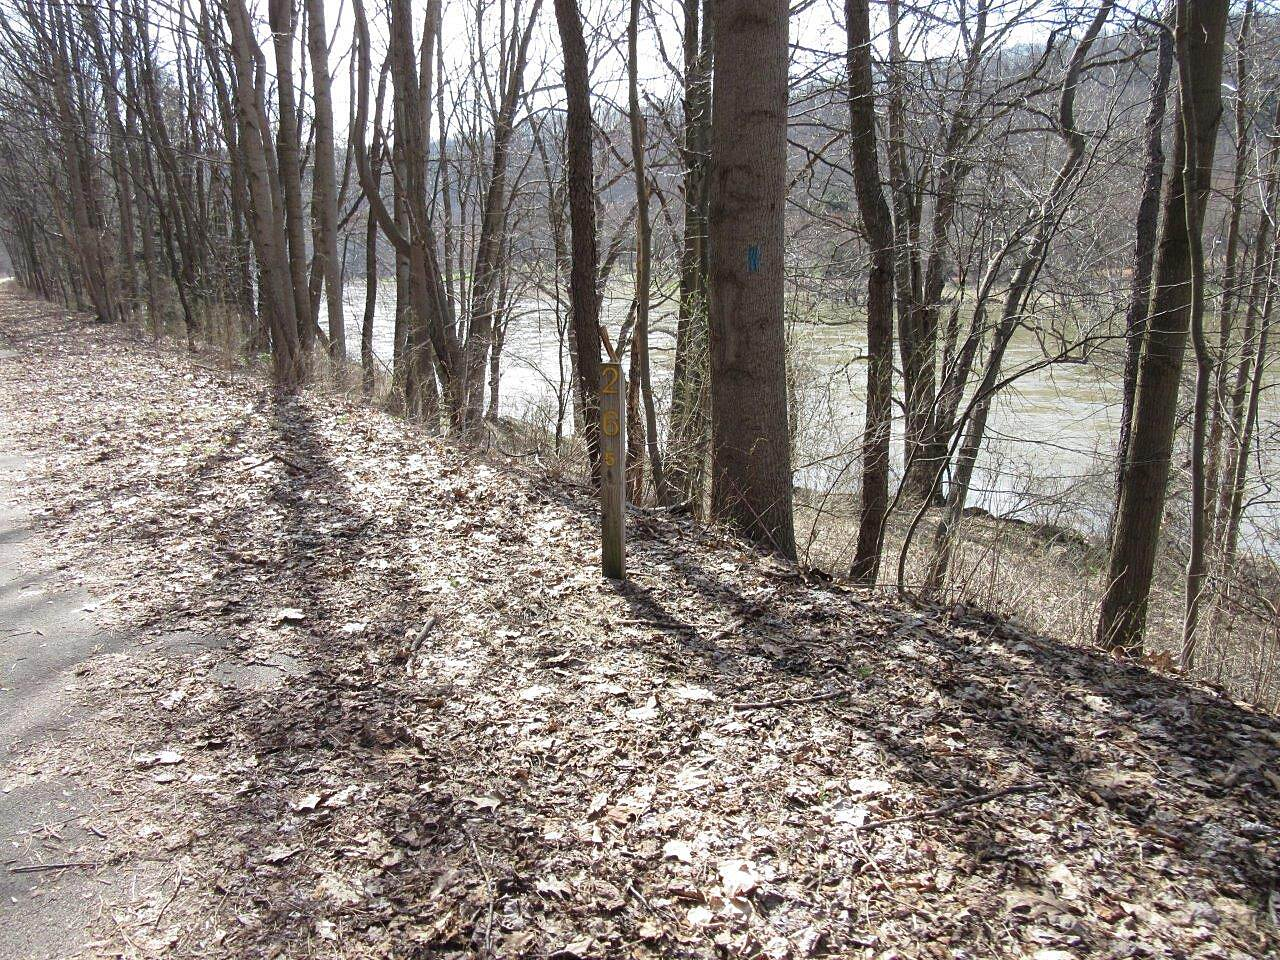 Allegheny River Trail Trail & River Trail runs along the Allegheny River - APril 2015